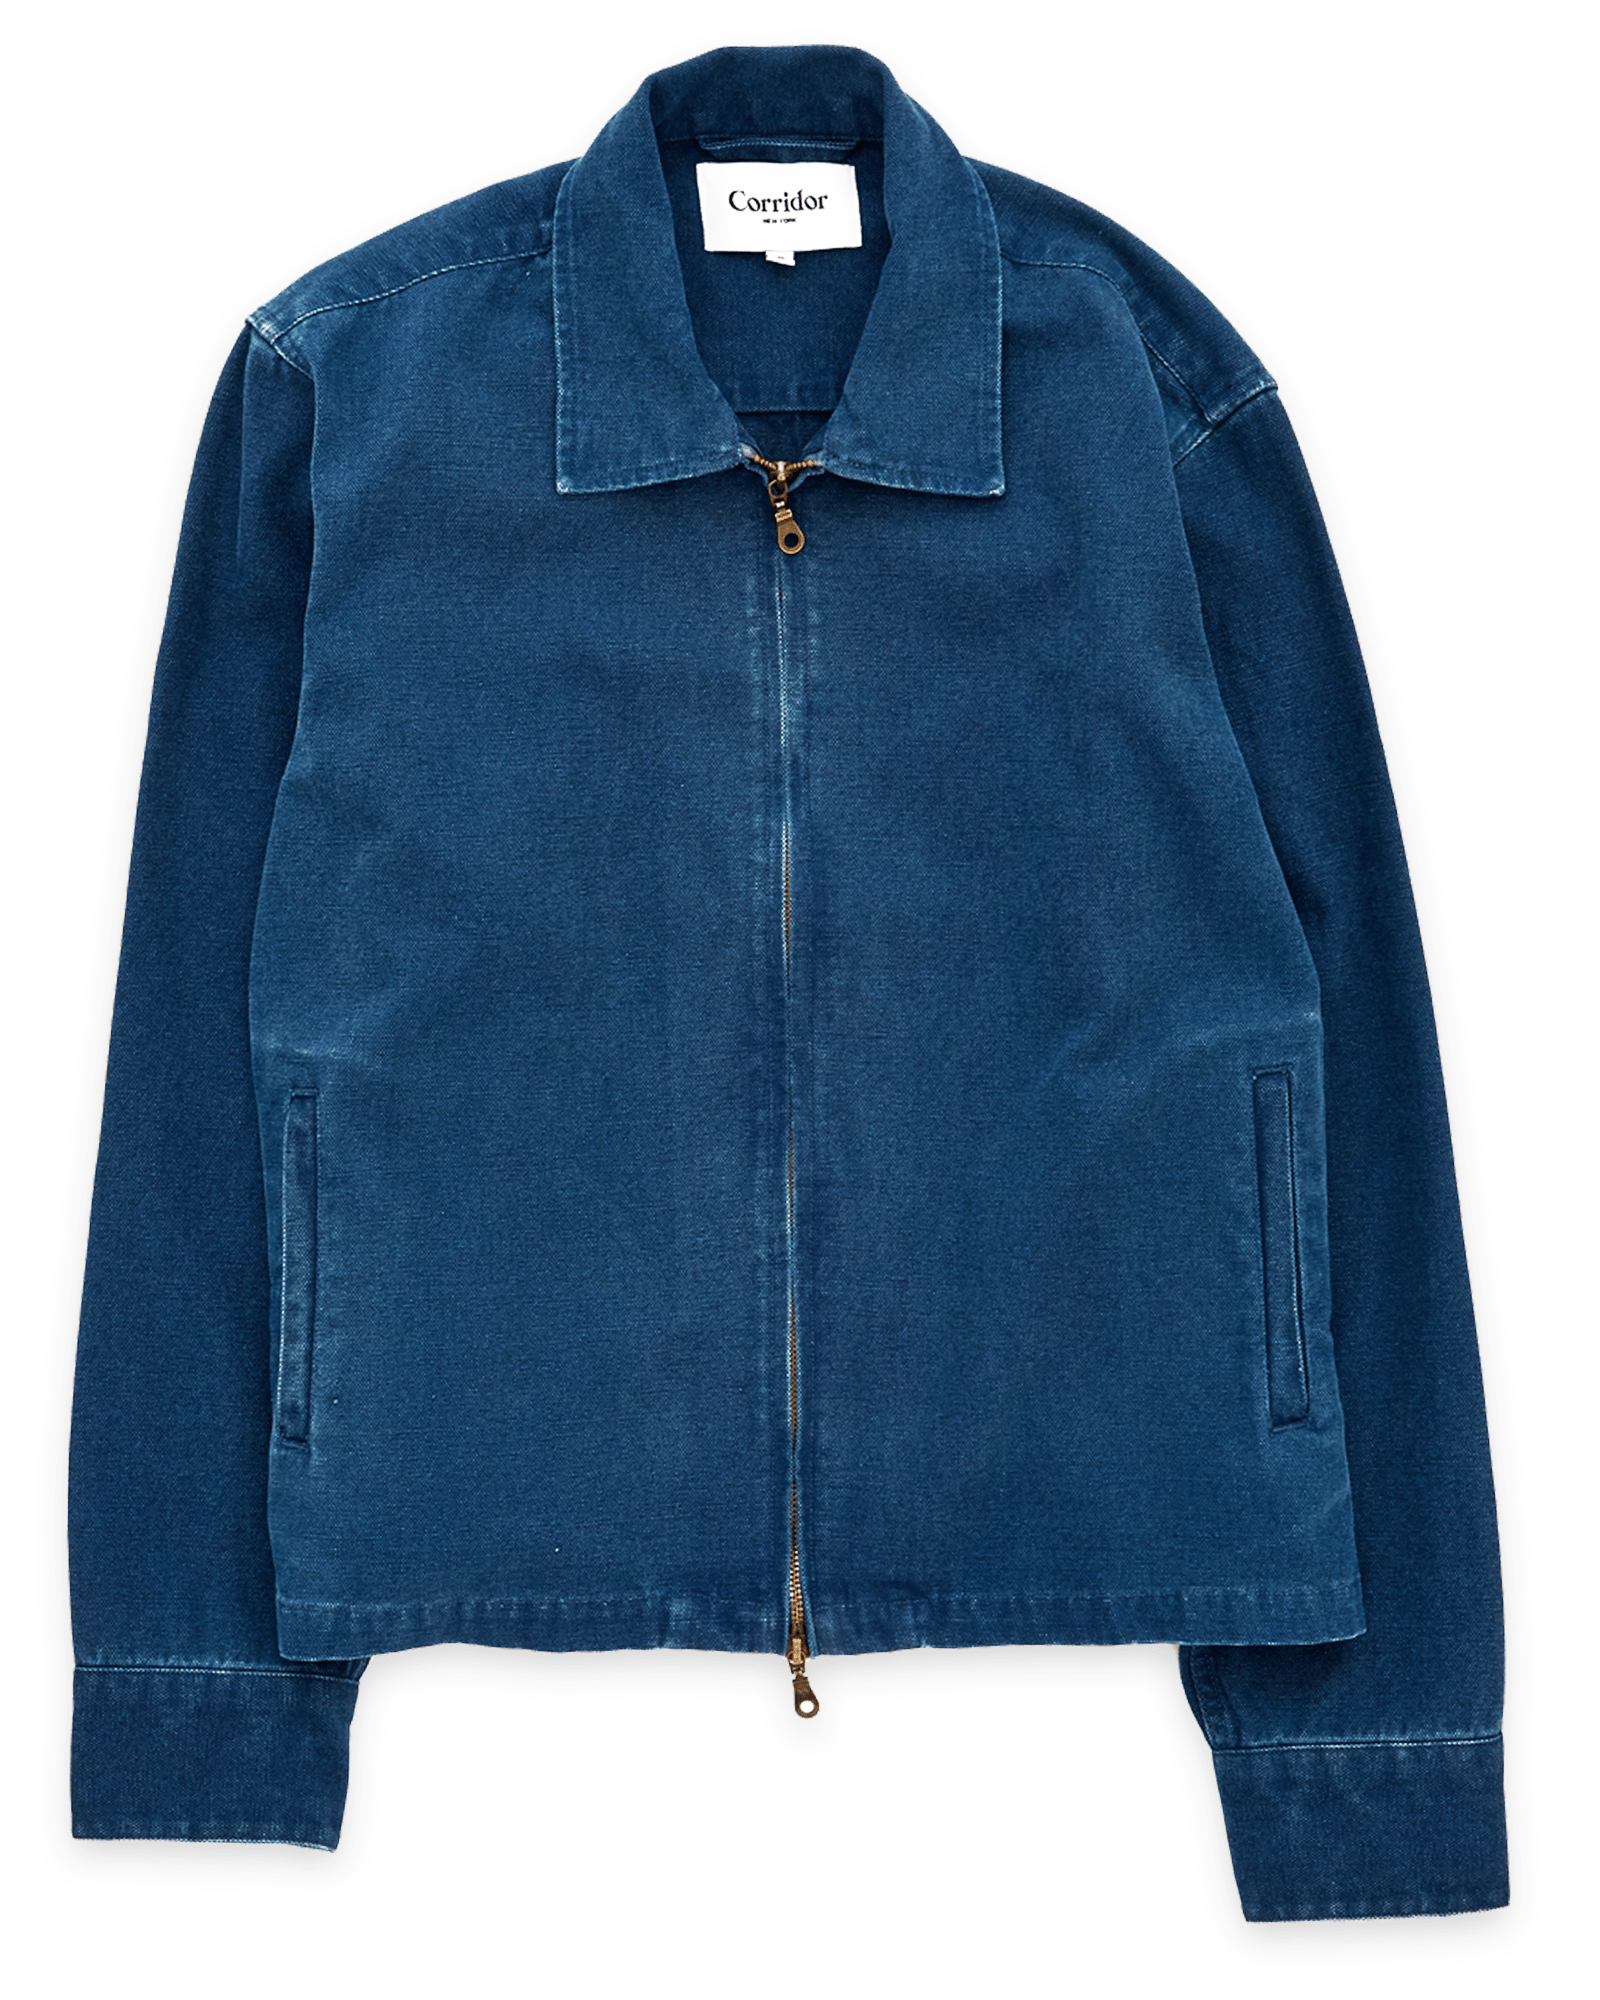 Duck Dye Indigo Canvas Zip Front